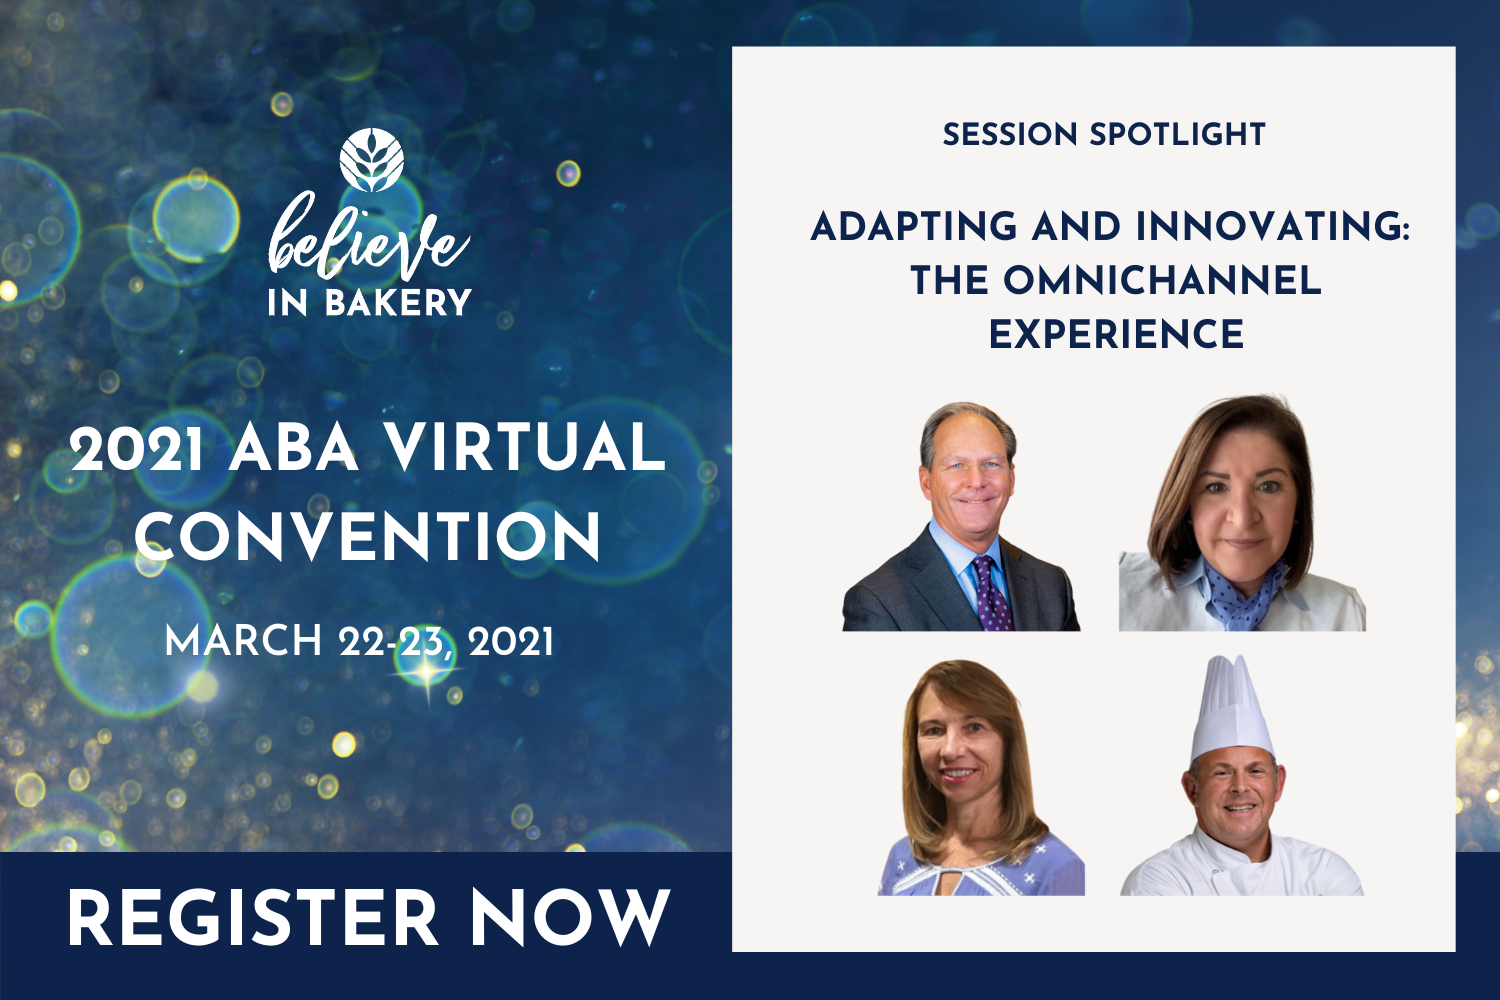 2021 ABA Virtual Convention -Omnichannel experience